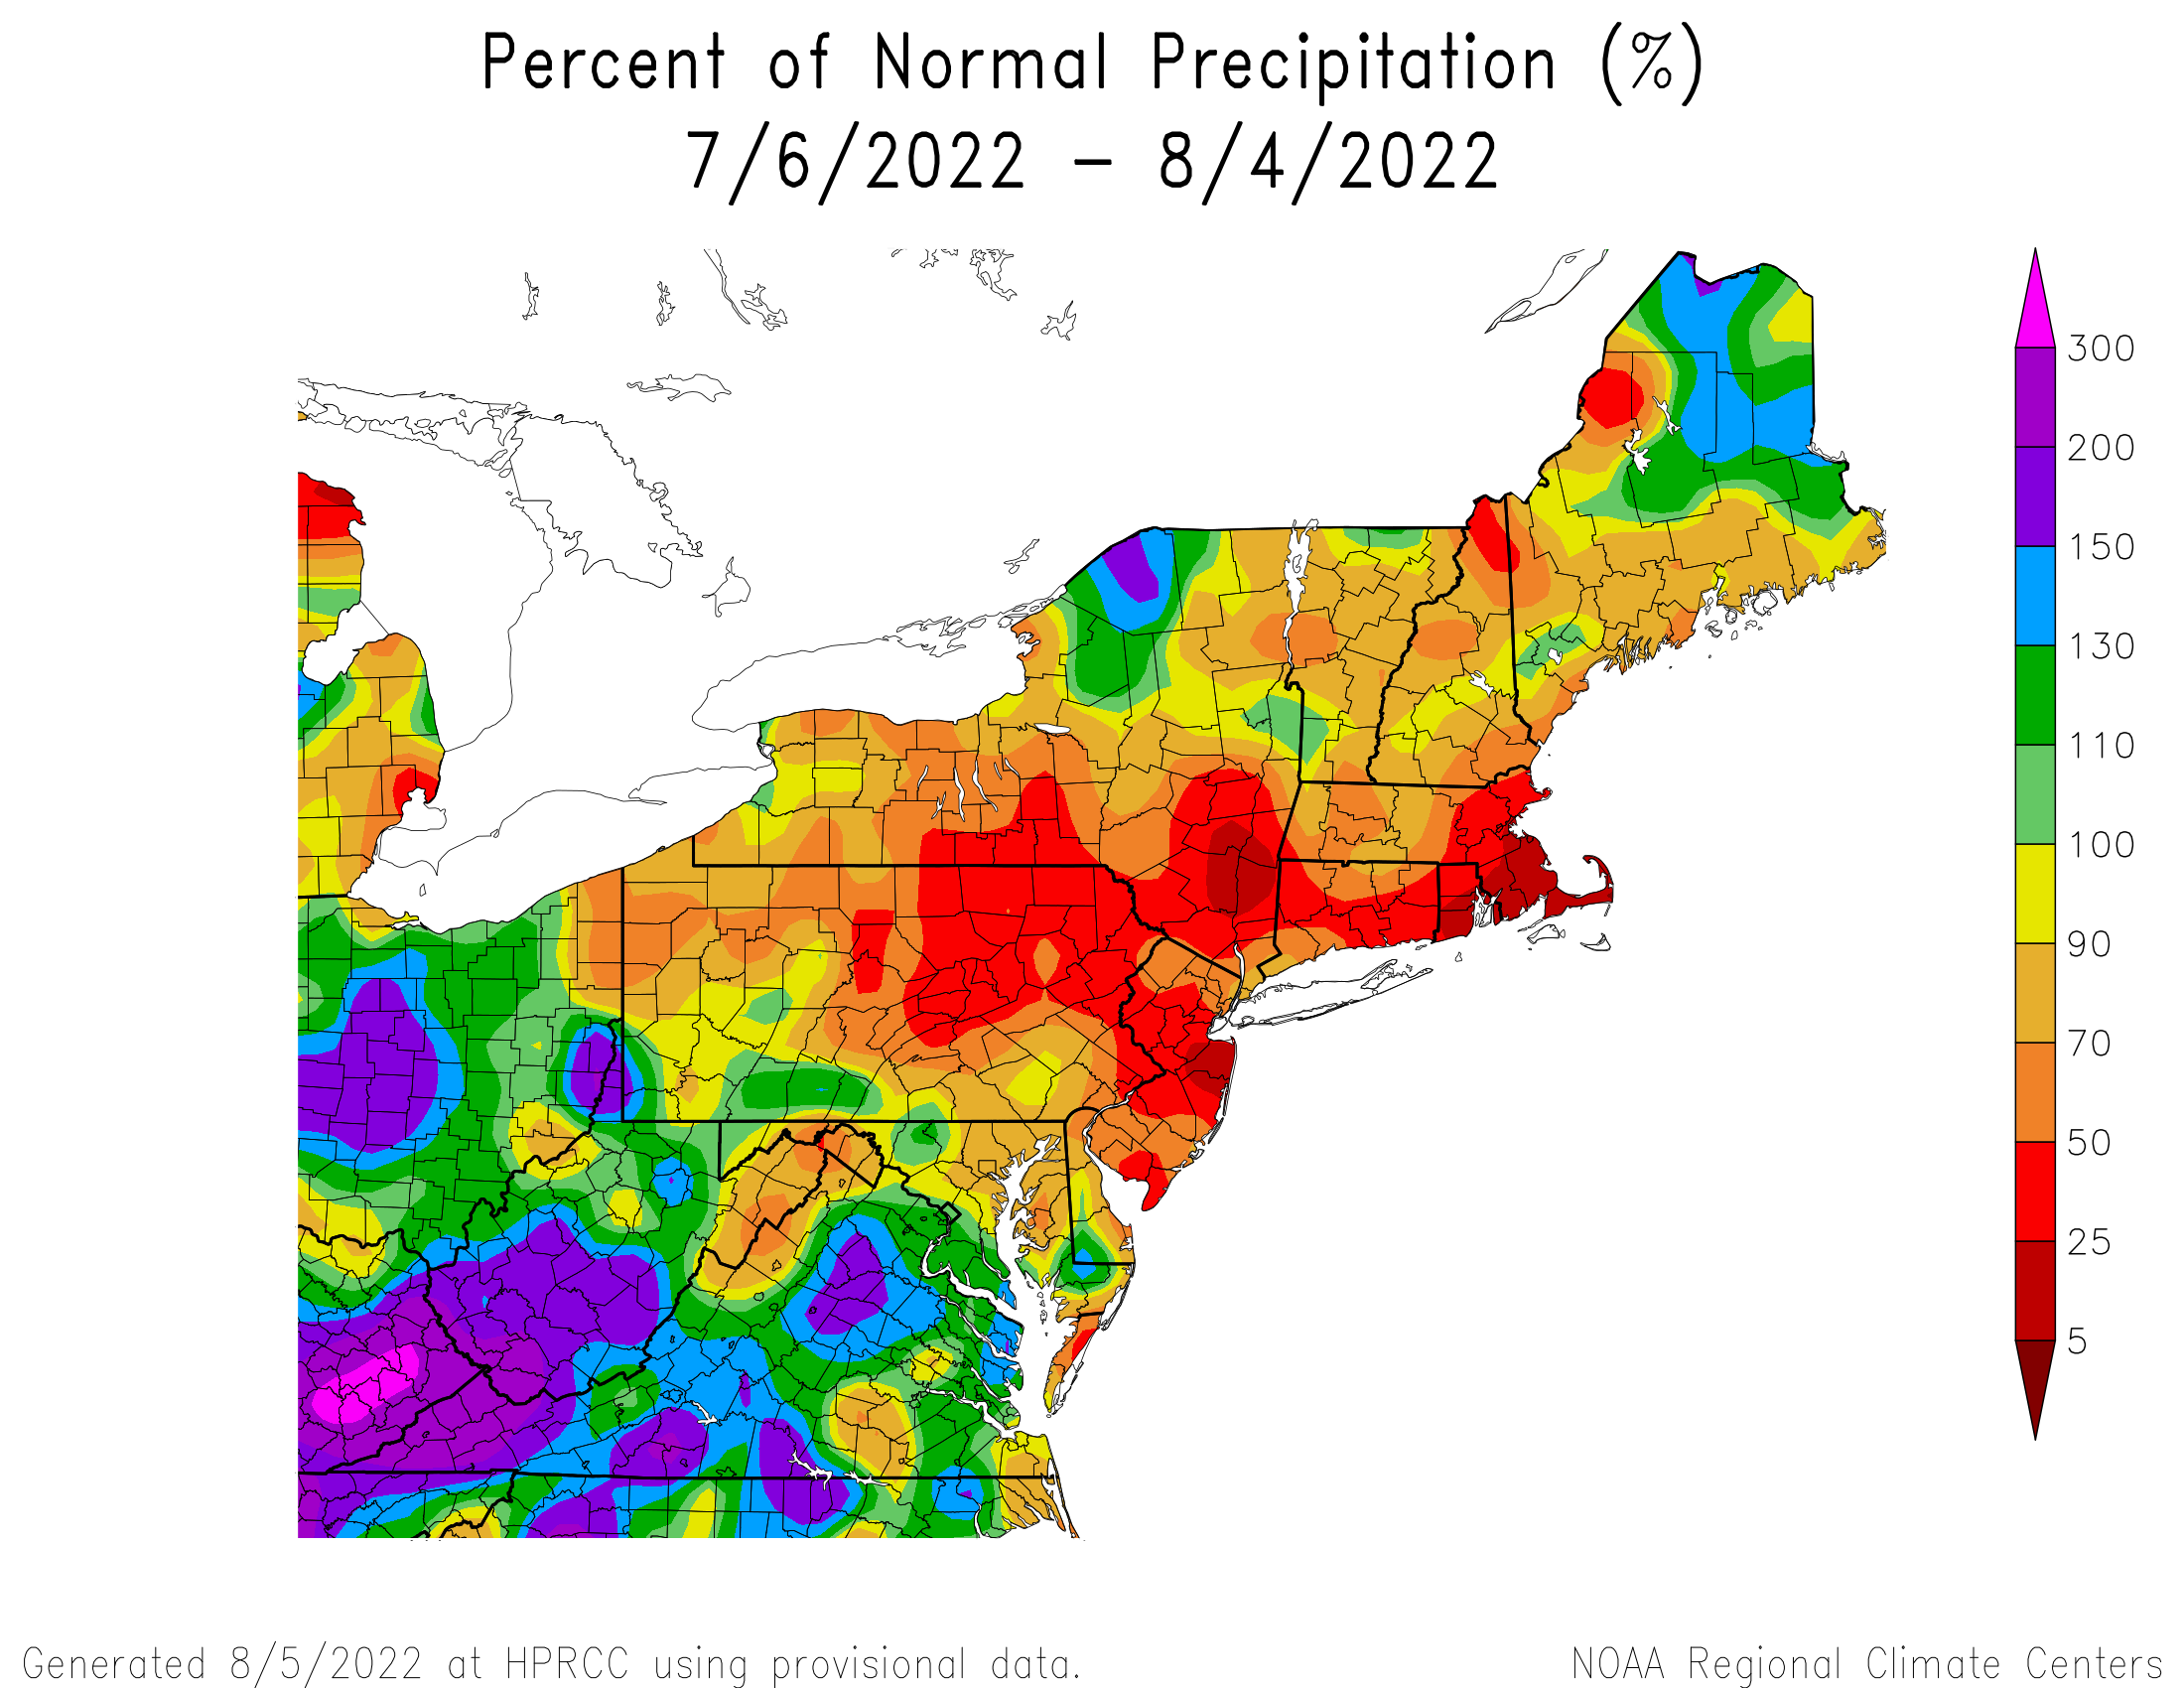 Last months percent of monthly rainfall map